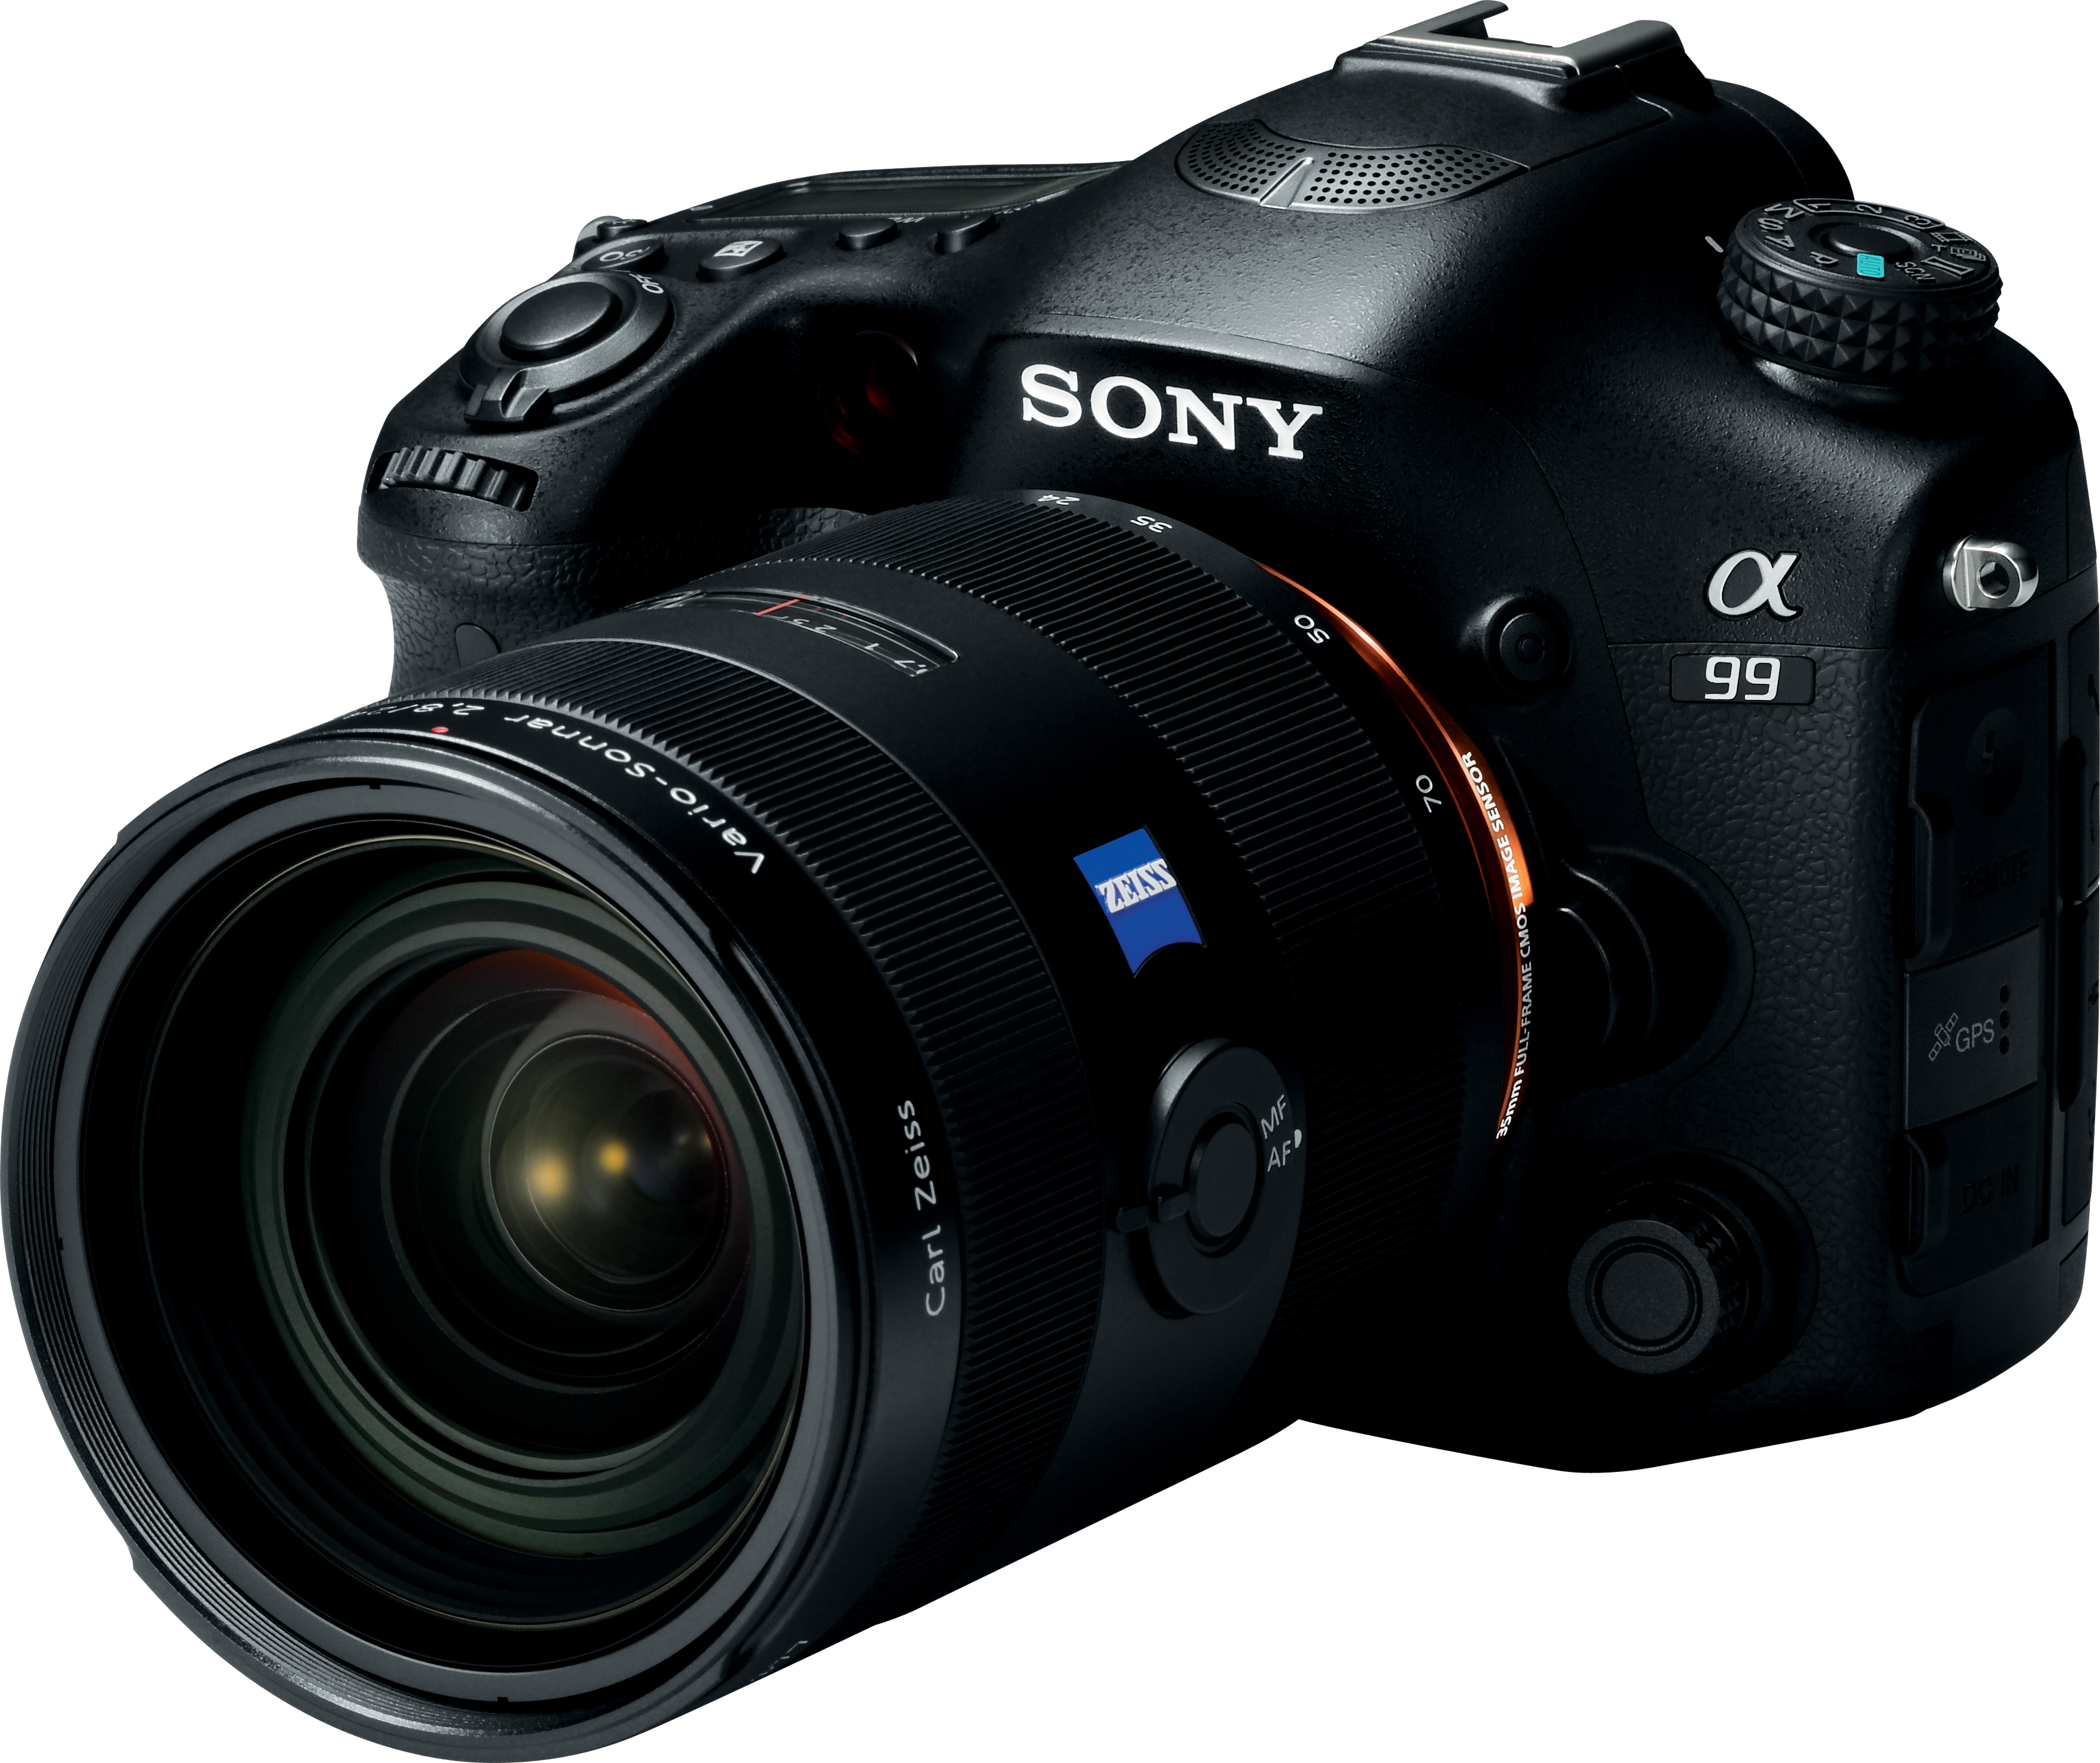 Top 10 Most Expensive Digital Cameras In The World